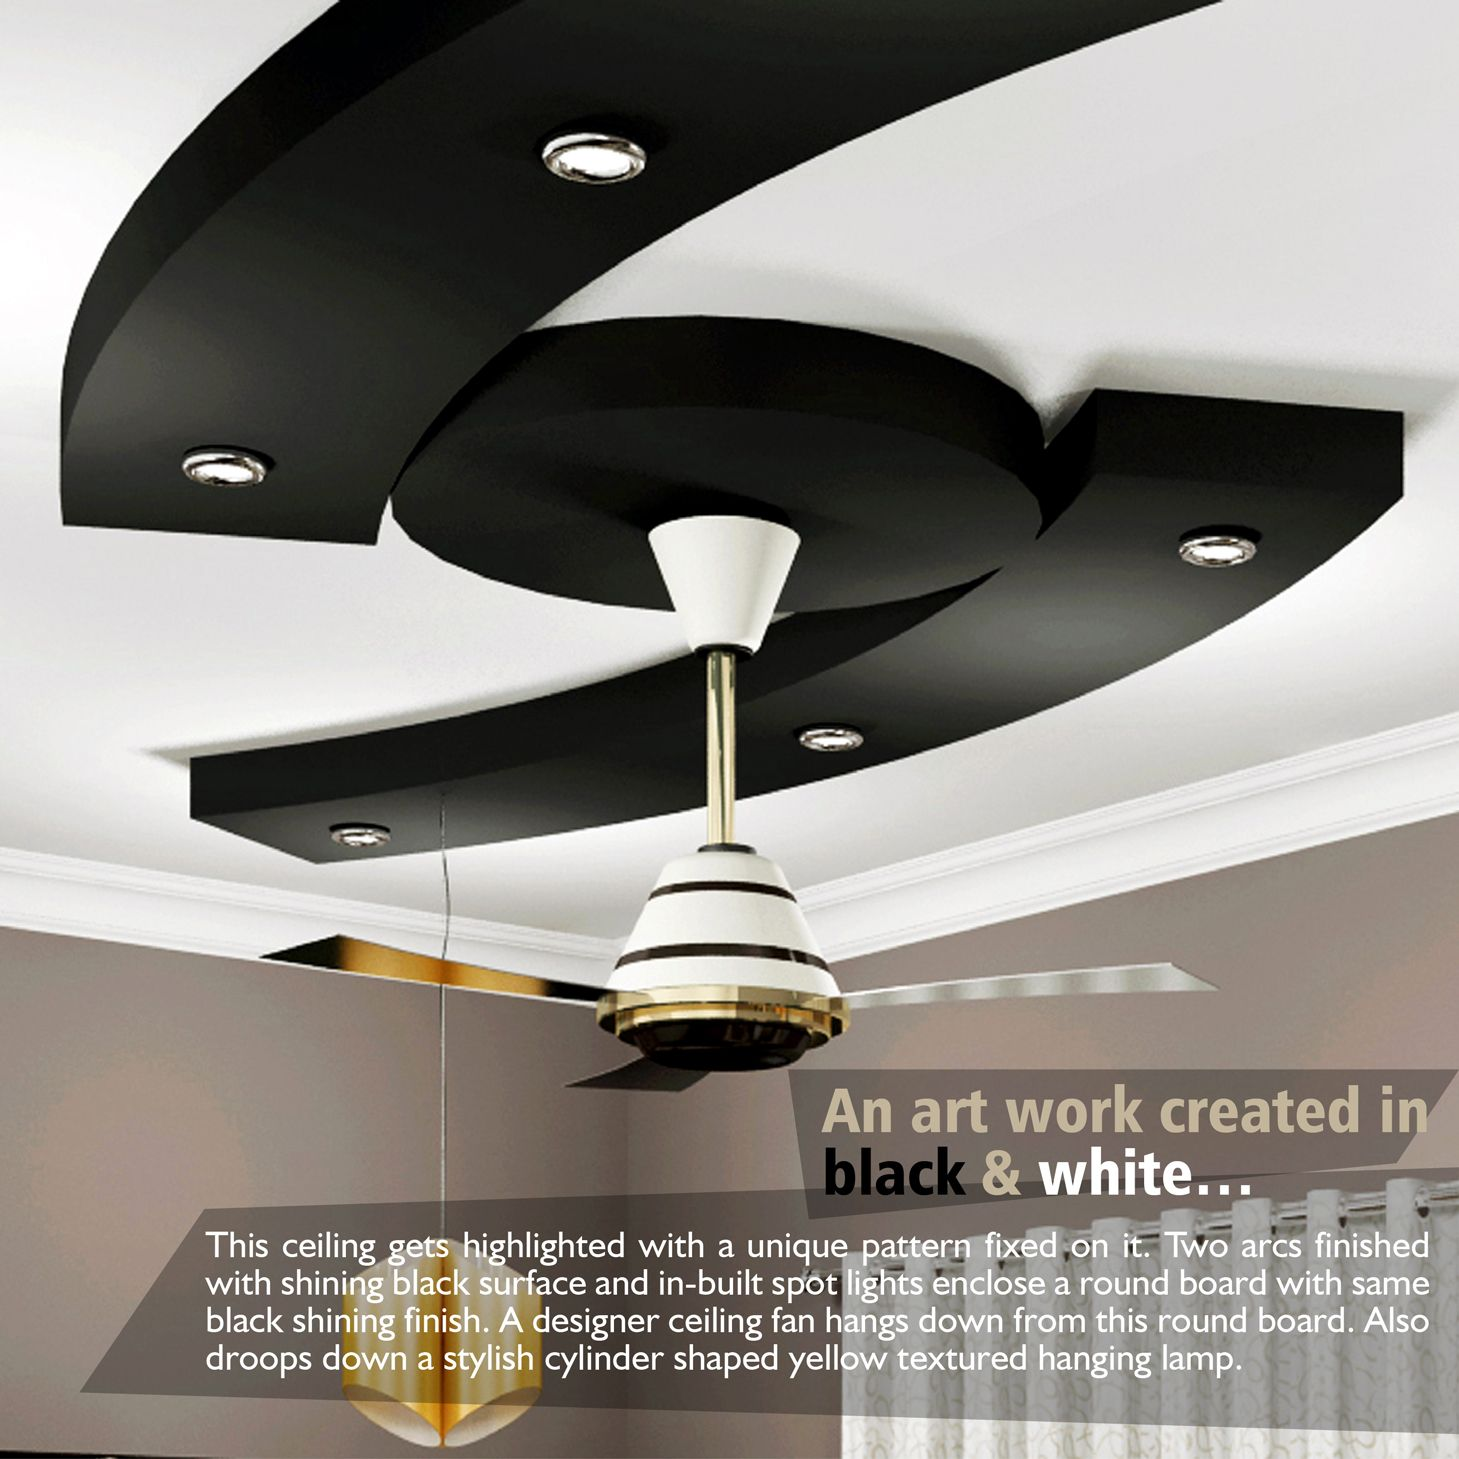 Bedroom Ceiling False DesignDesigns Black And White vYfyb76g